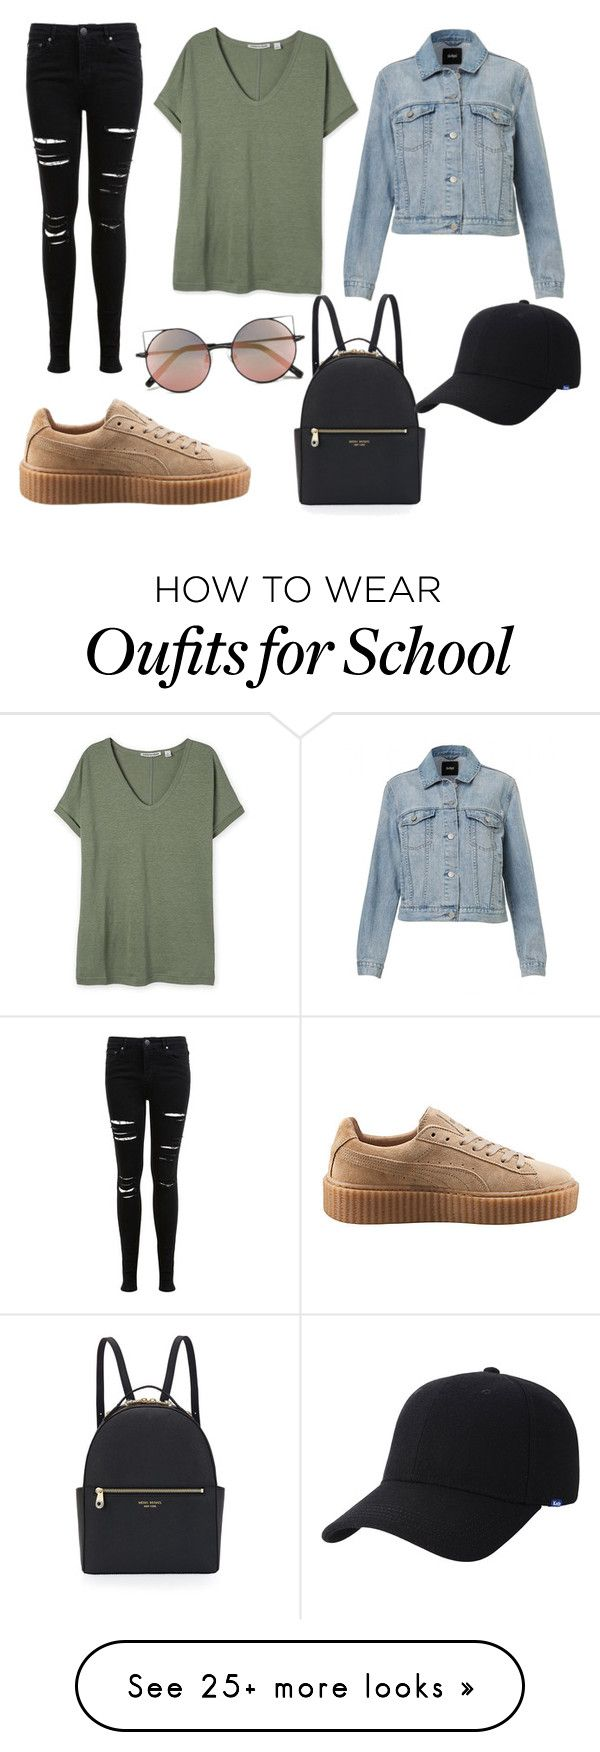 """Casual Outfit for brunch or school"" by grxceh on Polyvore featuring Puma, Miss Selfridge, Henri Bendel, Linda Farrow and Keds"